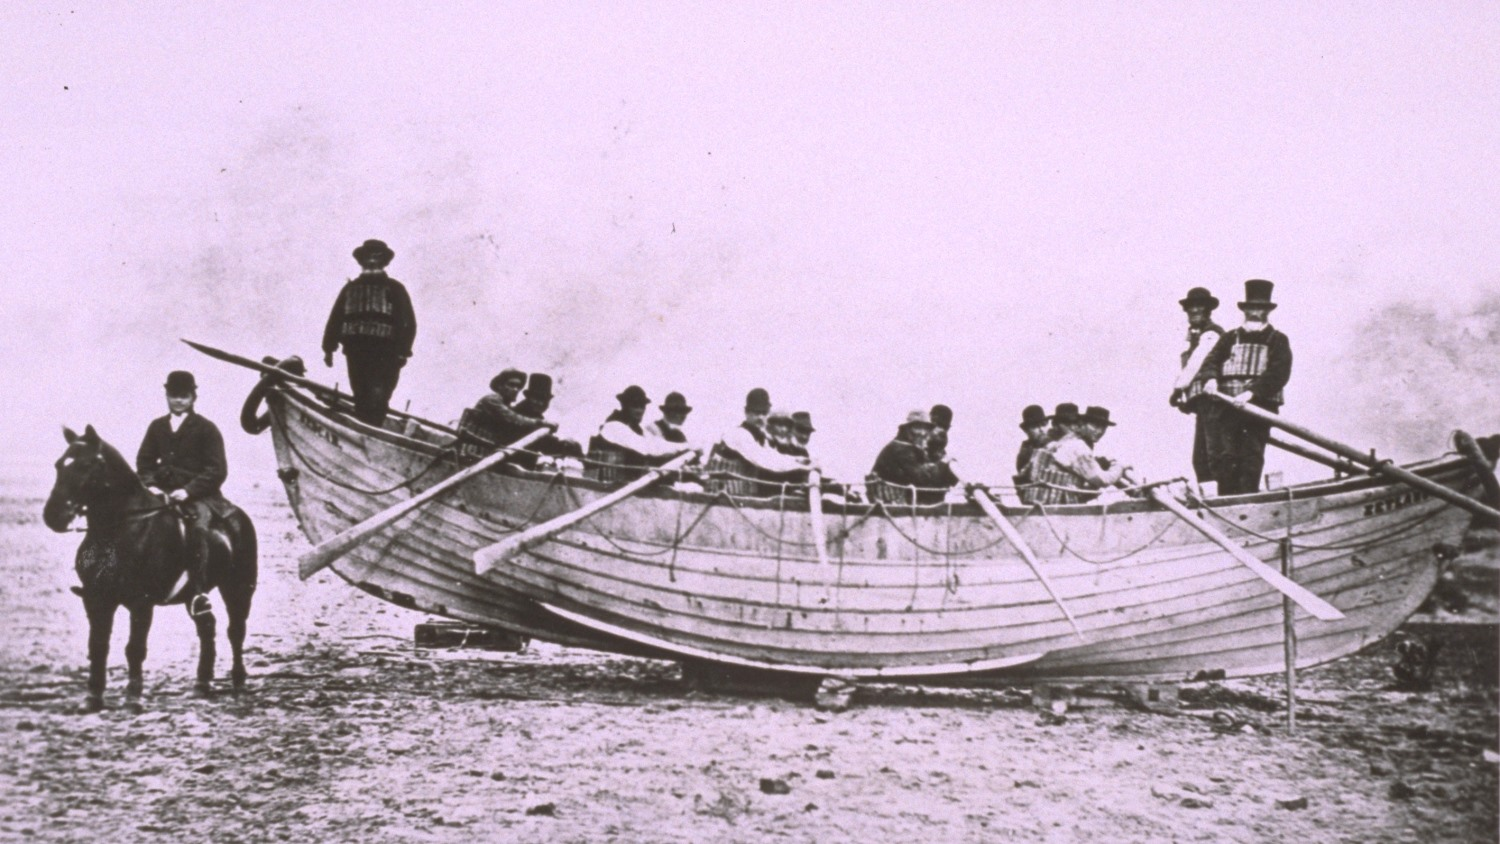 The oldest surviving lifeboat, the Zetland, at Redcar in 1802